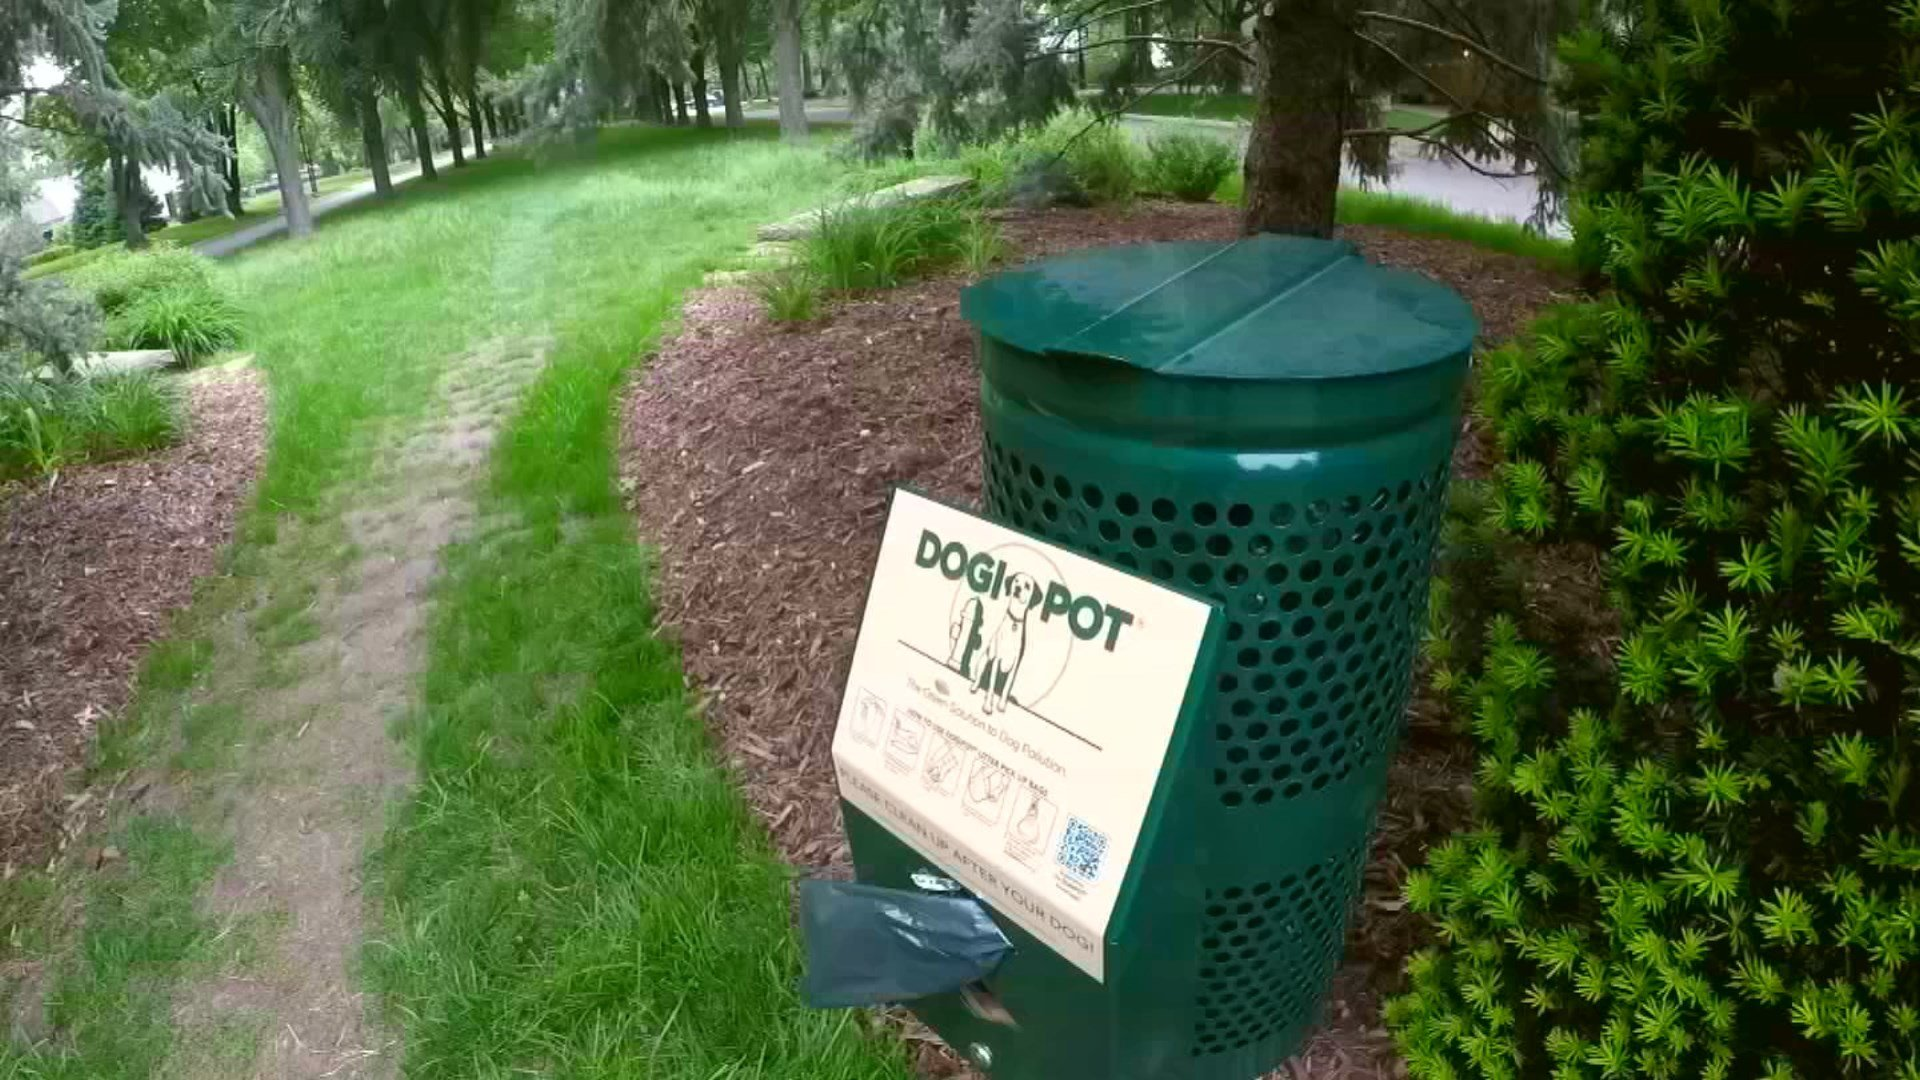 Dogipots rarely go unused in one Mission Hills neighborhood. But lately, someone has been abusing the waste receptacles. (KCTV5)